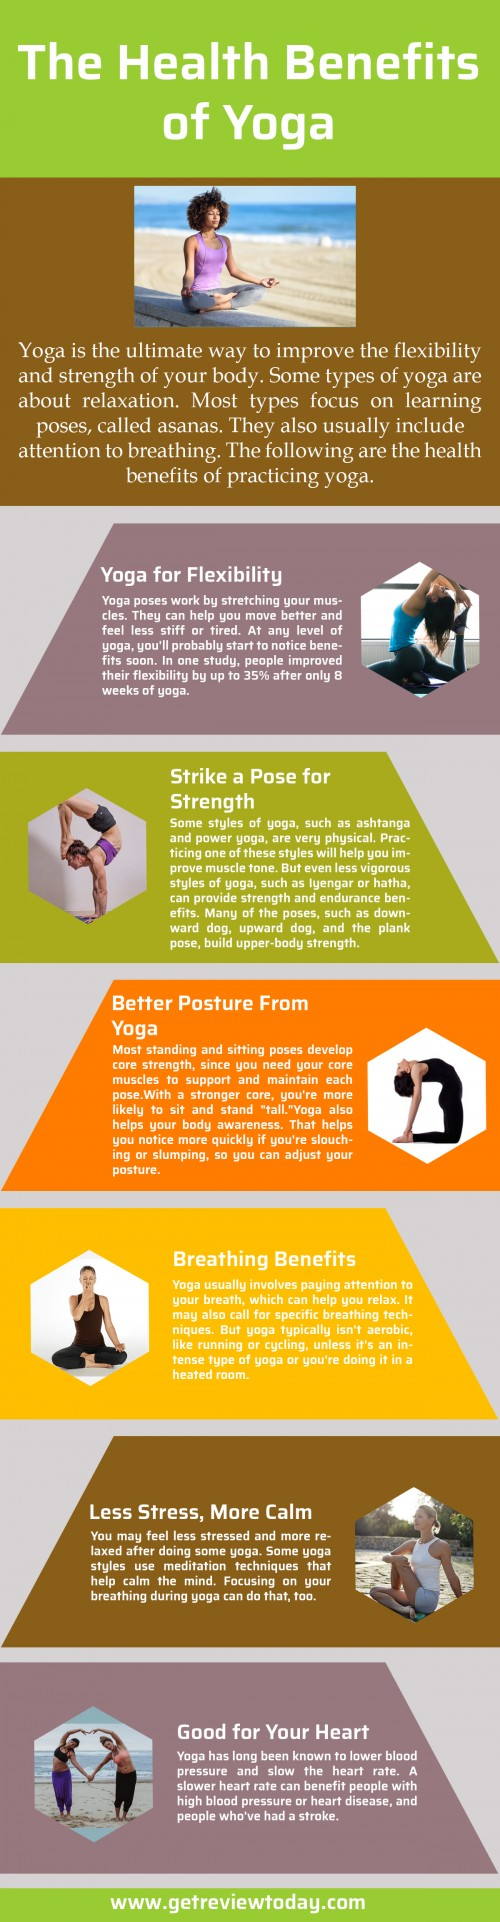 The-Health-Benefits-of-Yoga.jpg